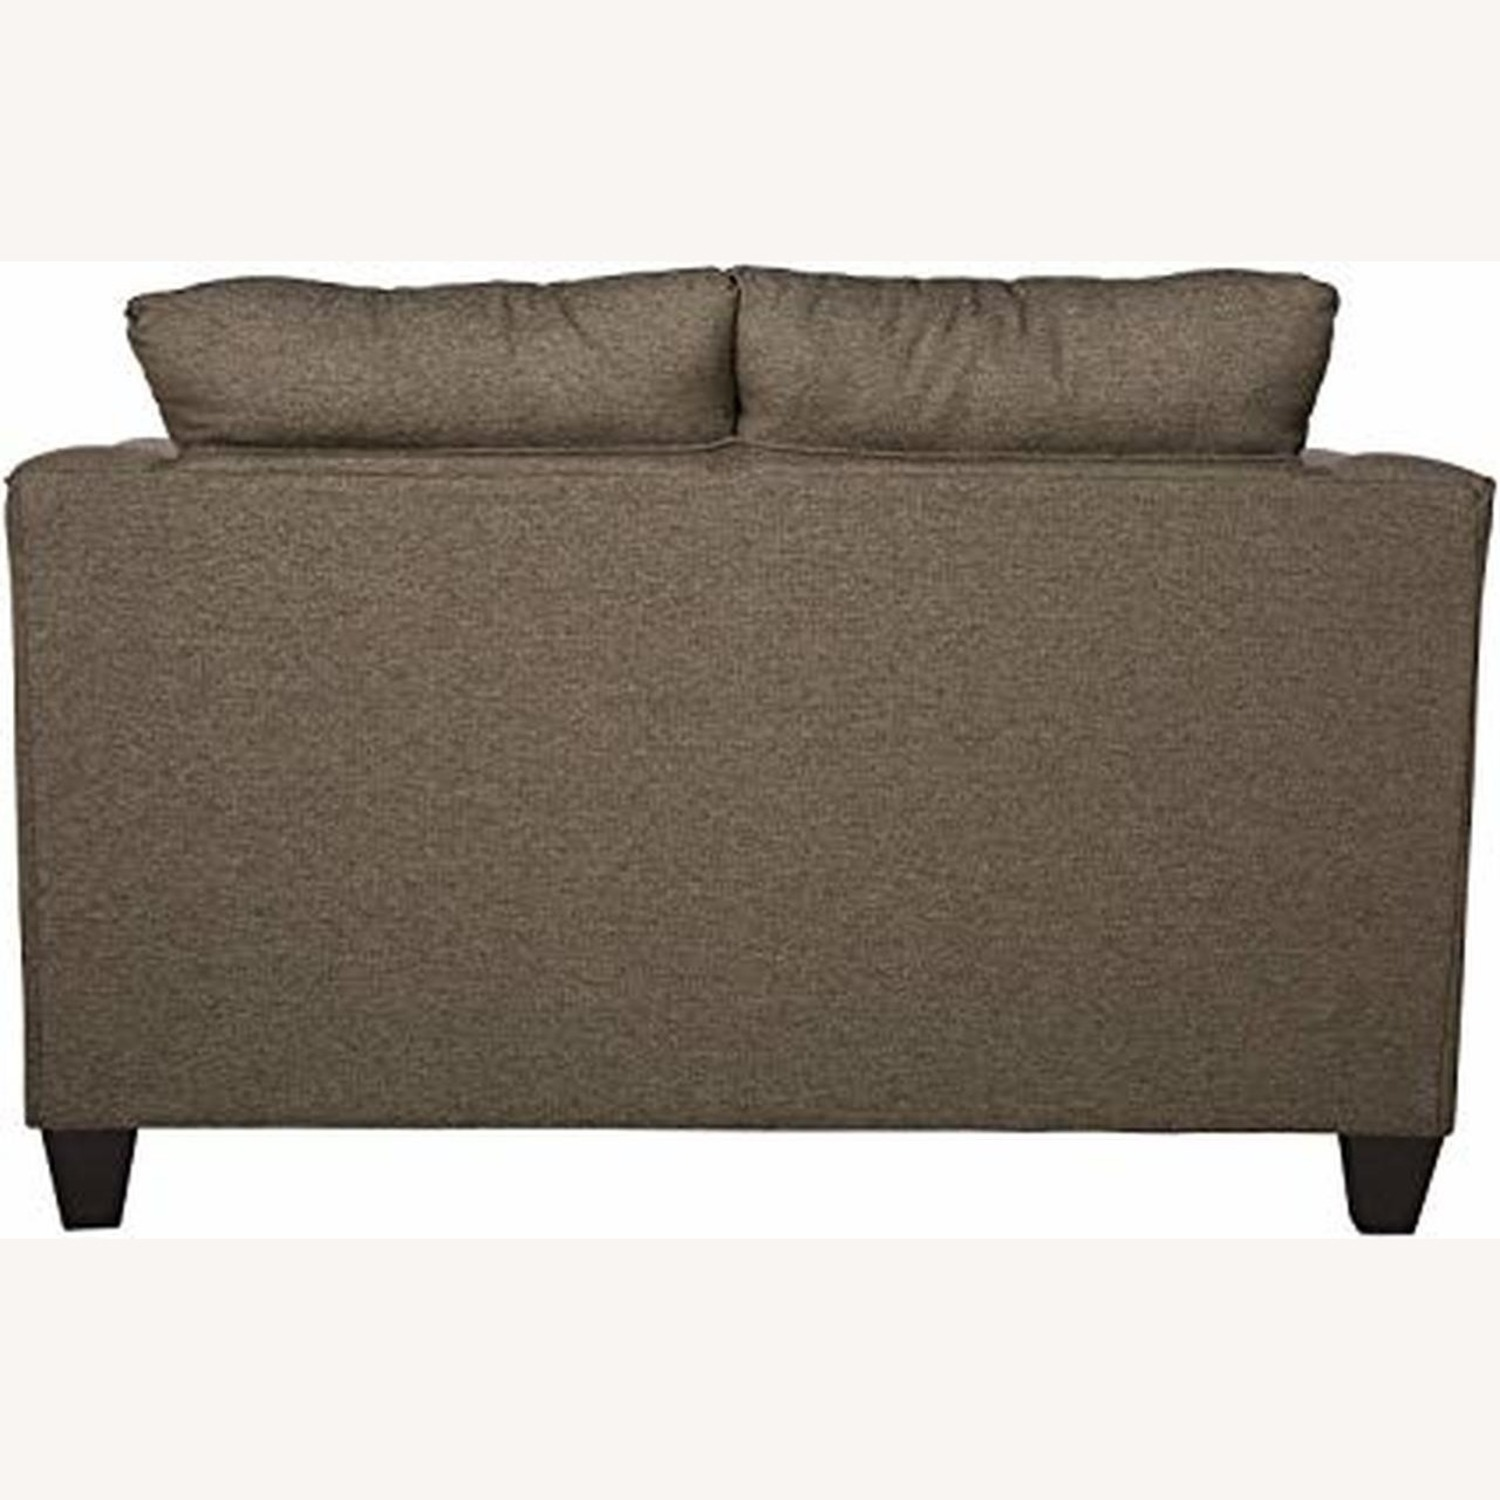 Flared Arms Loveseat In Neutral Grey - image-2